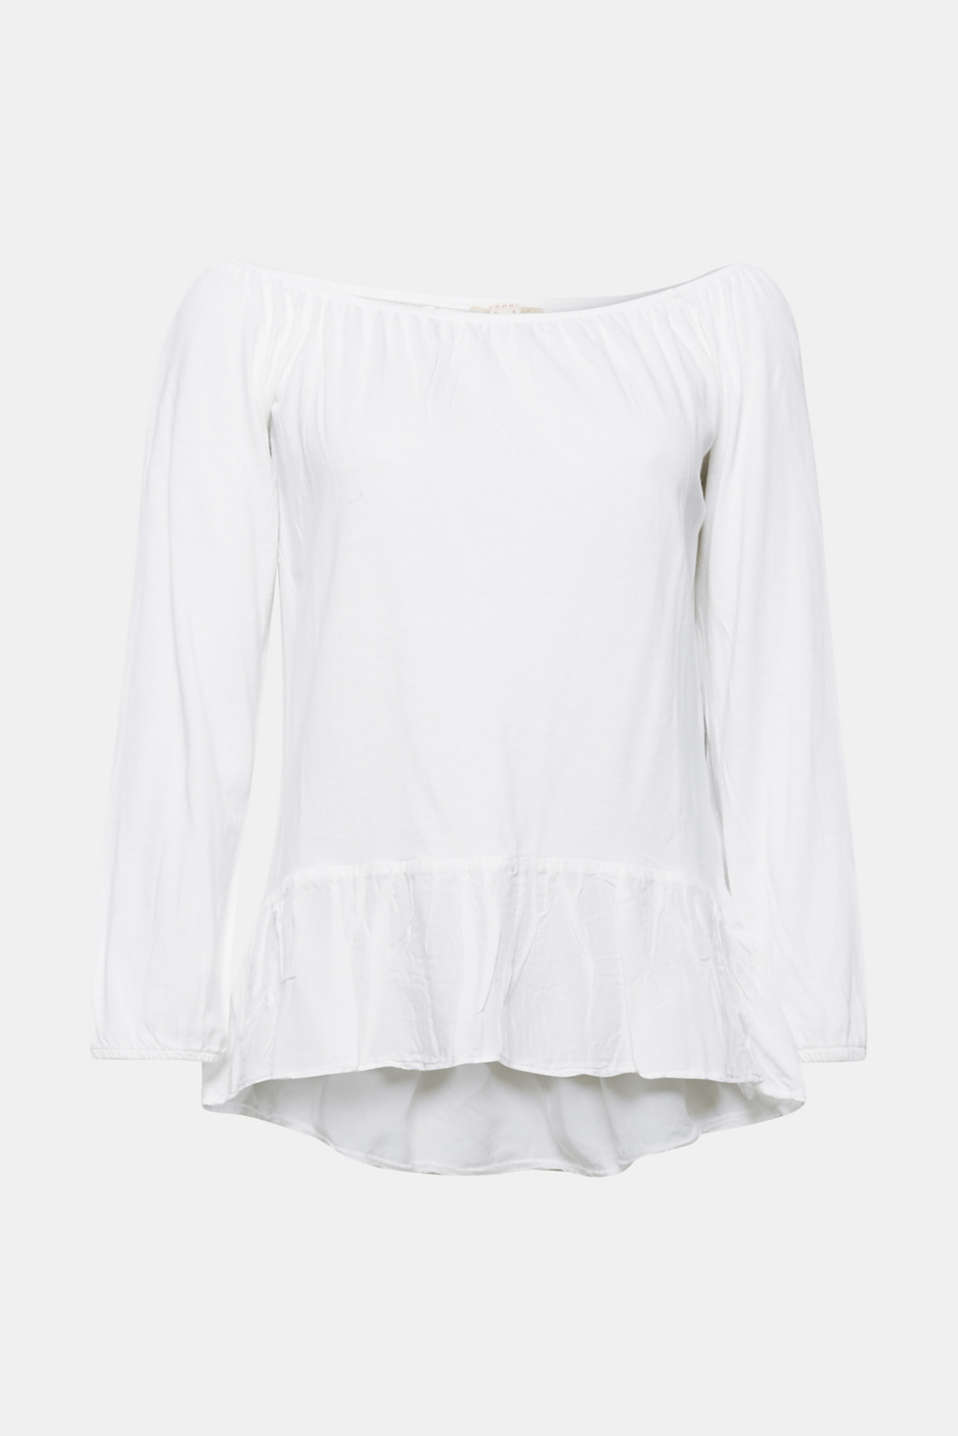 The sexy off-the-shoulder neckline and attached fabric flounce on the lower hem make this top a great, feminine eye-catcher.